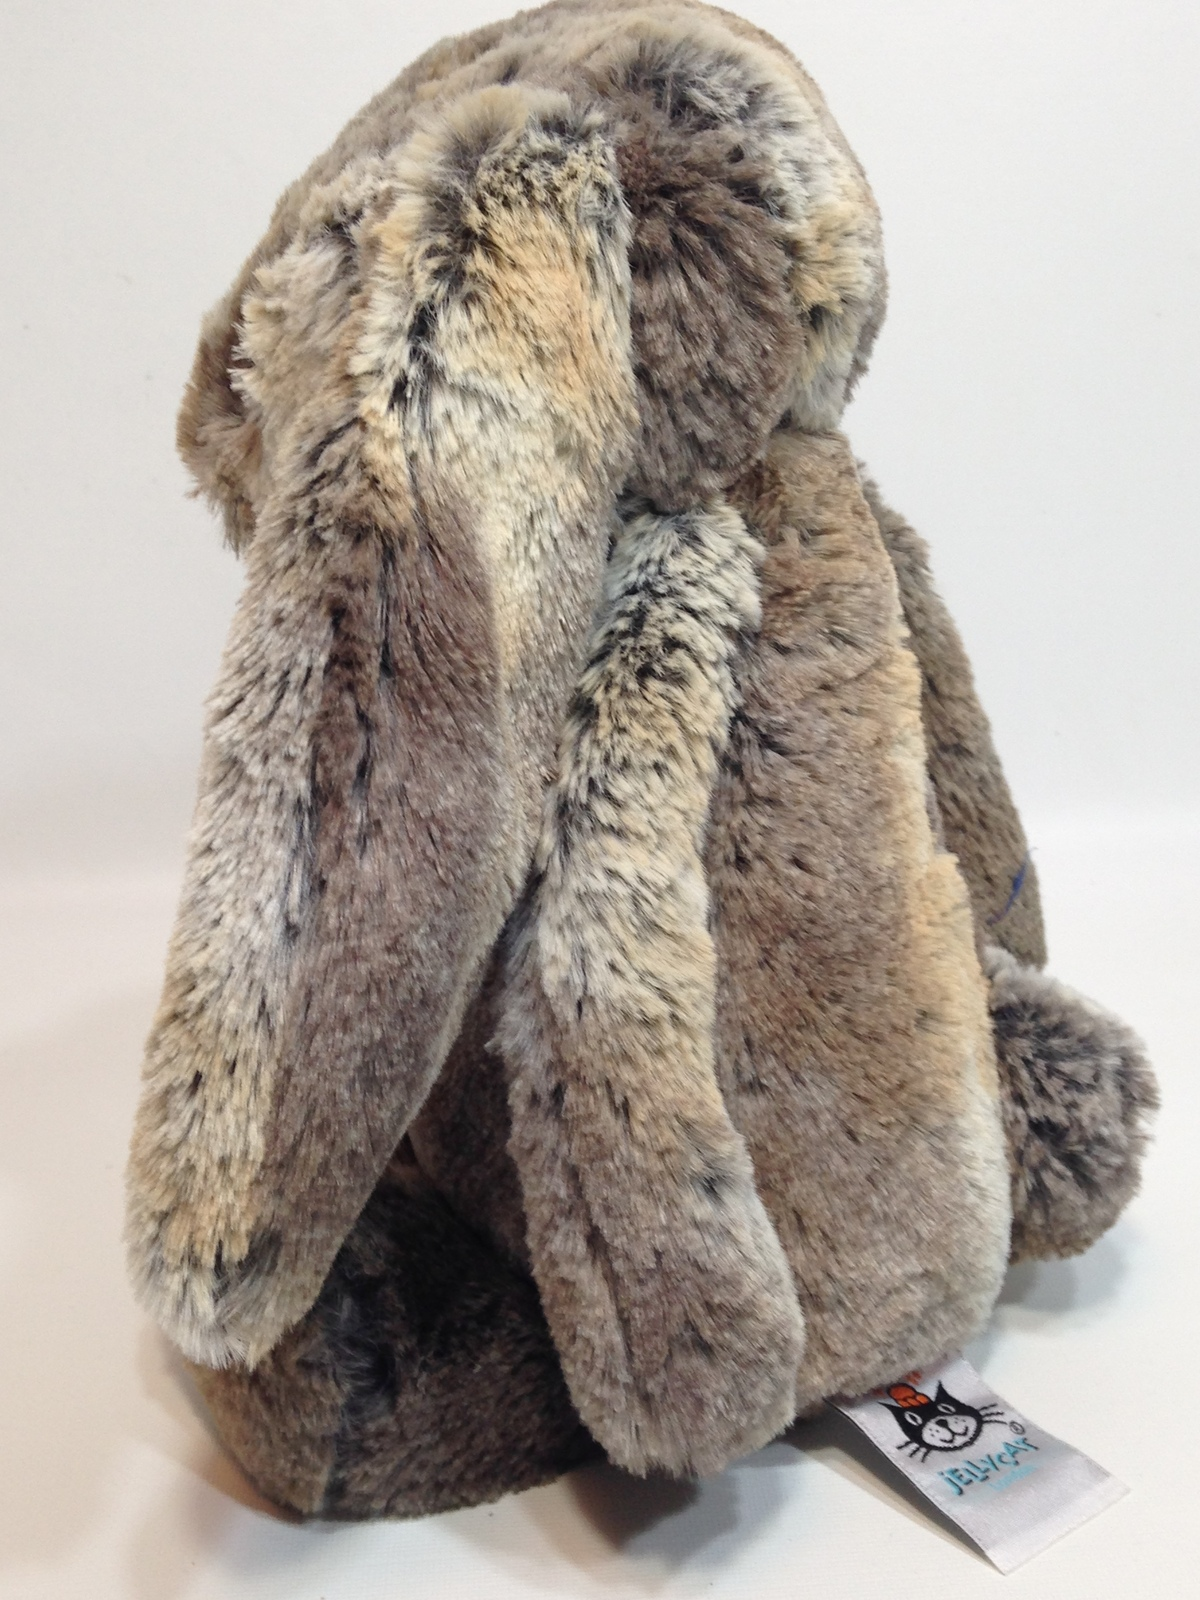 "Jellycat Bunny Rabbit Woodland Babe Plush Toy Gray Brown 12"" Stuffed Animal"